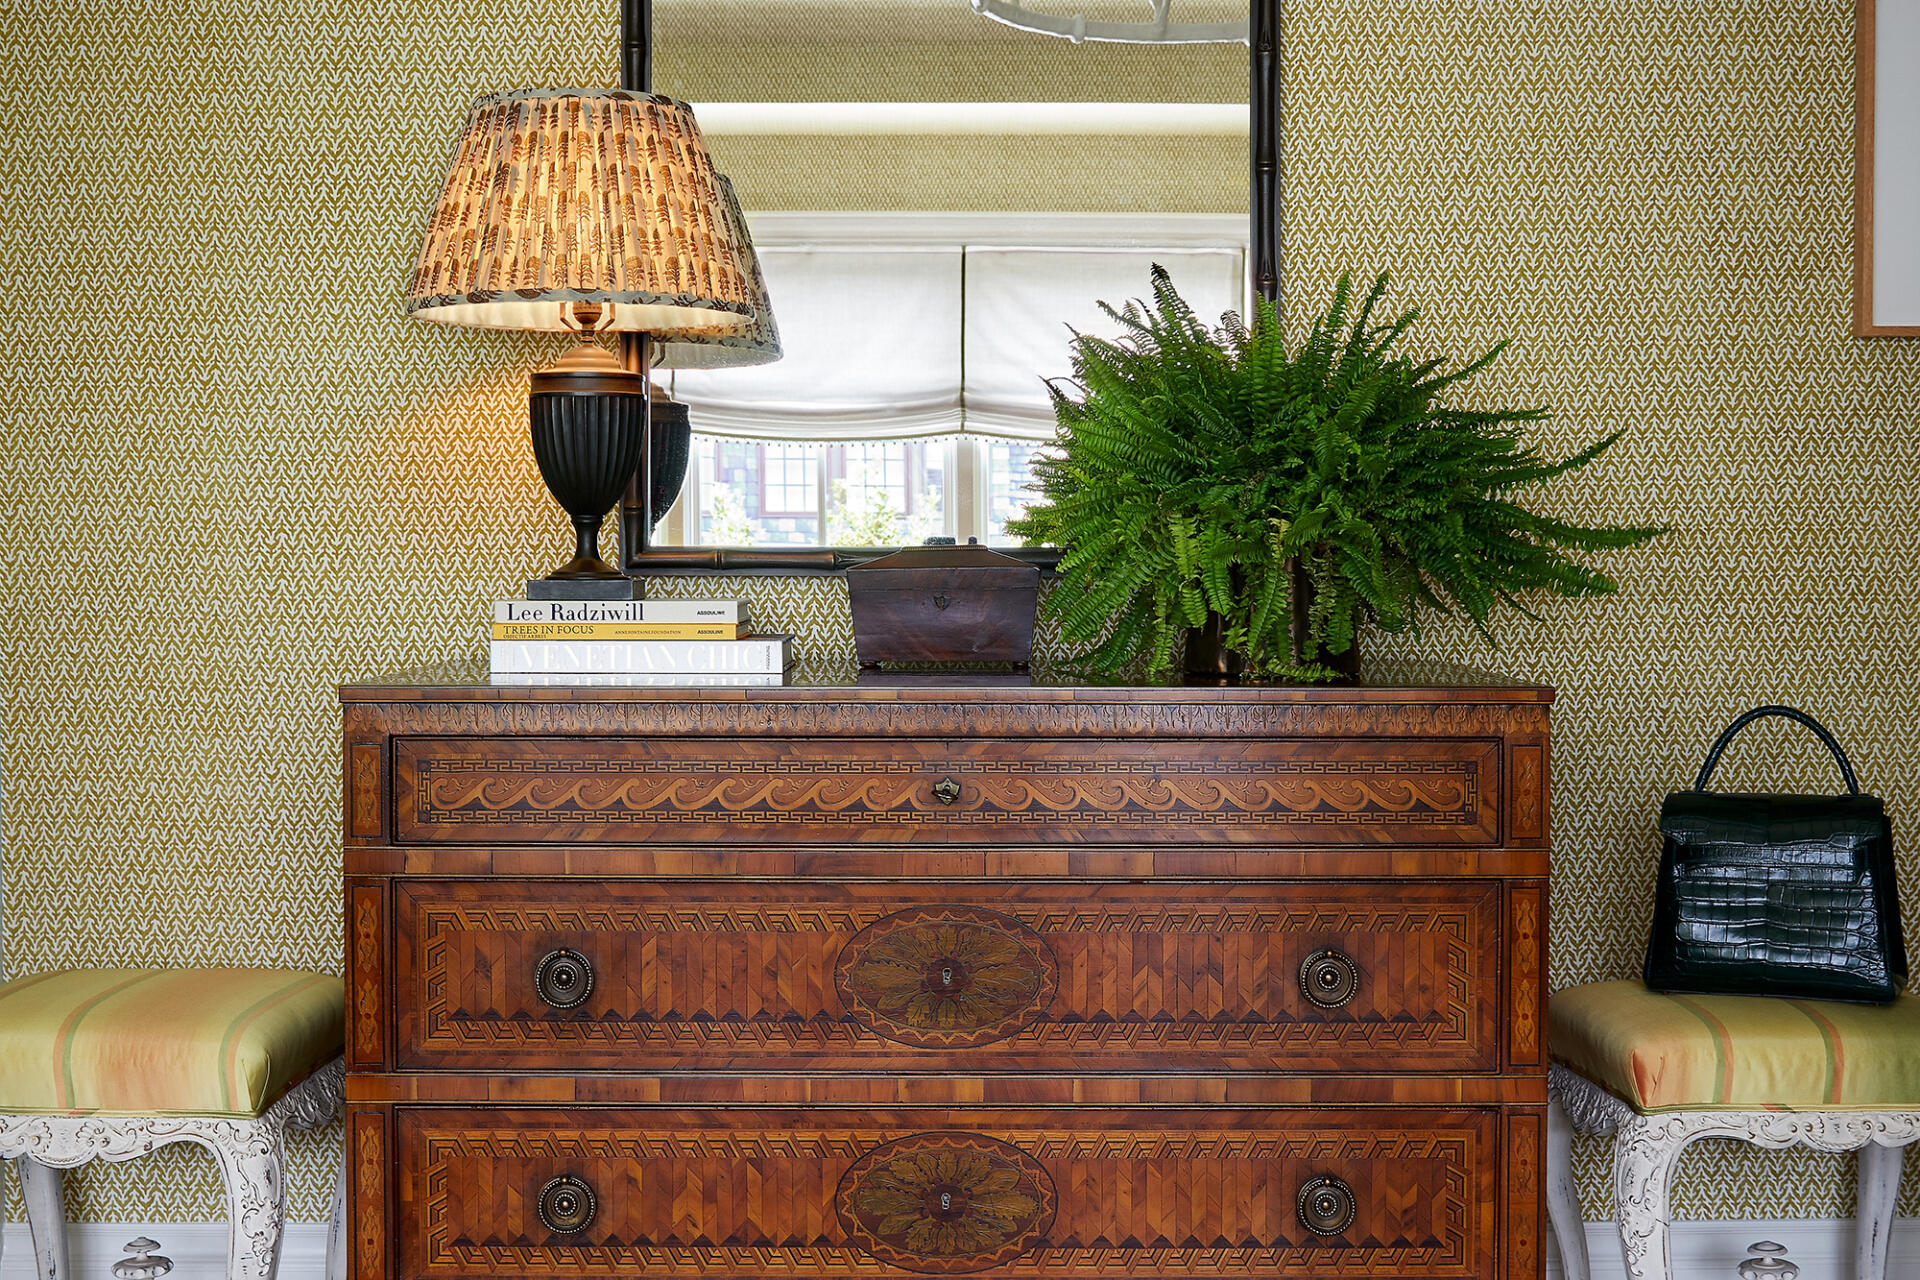 Collier Webb Bamboo Mirror in the Wells Design room for Kips Bay Dallas